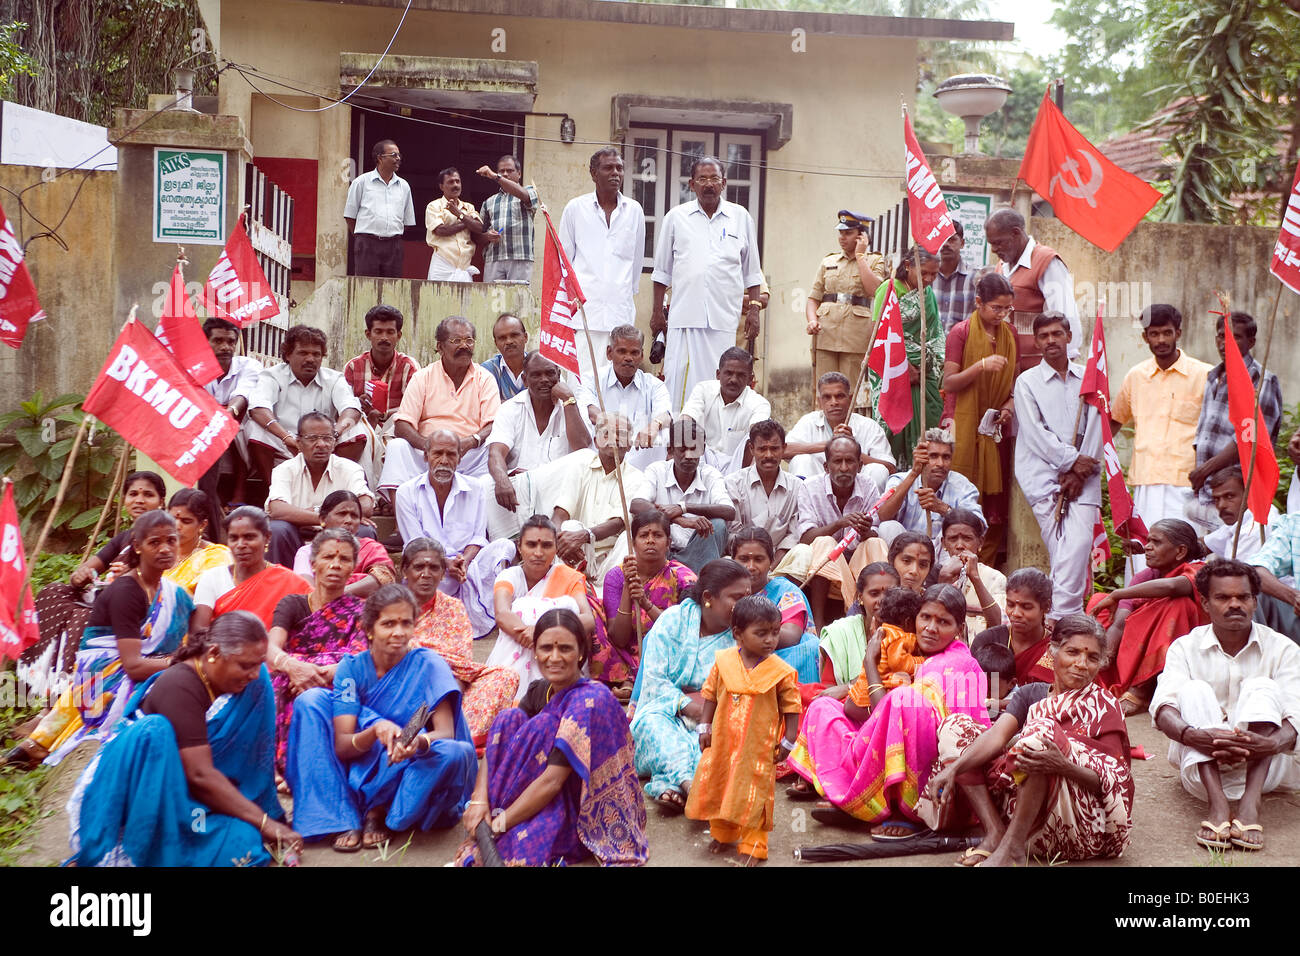 Communist Party Protest Rally Indian Land Workers Union BKMU holding a Sit Down - Stock Image